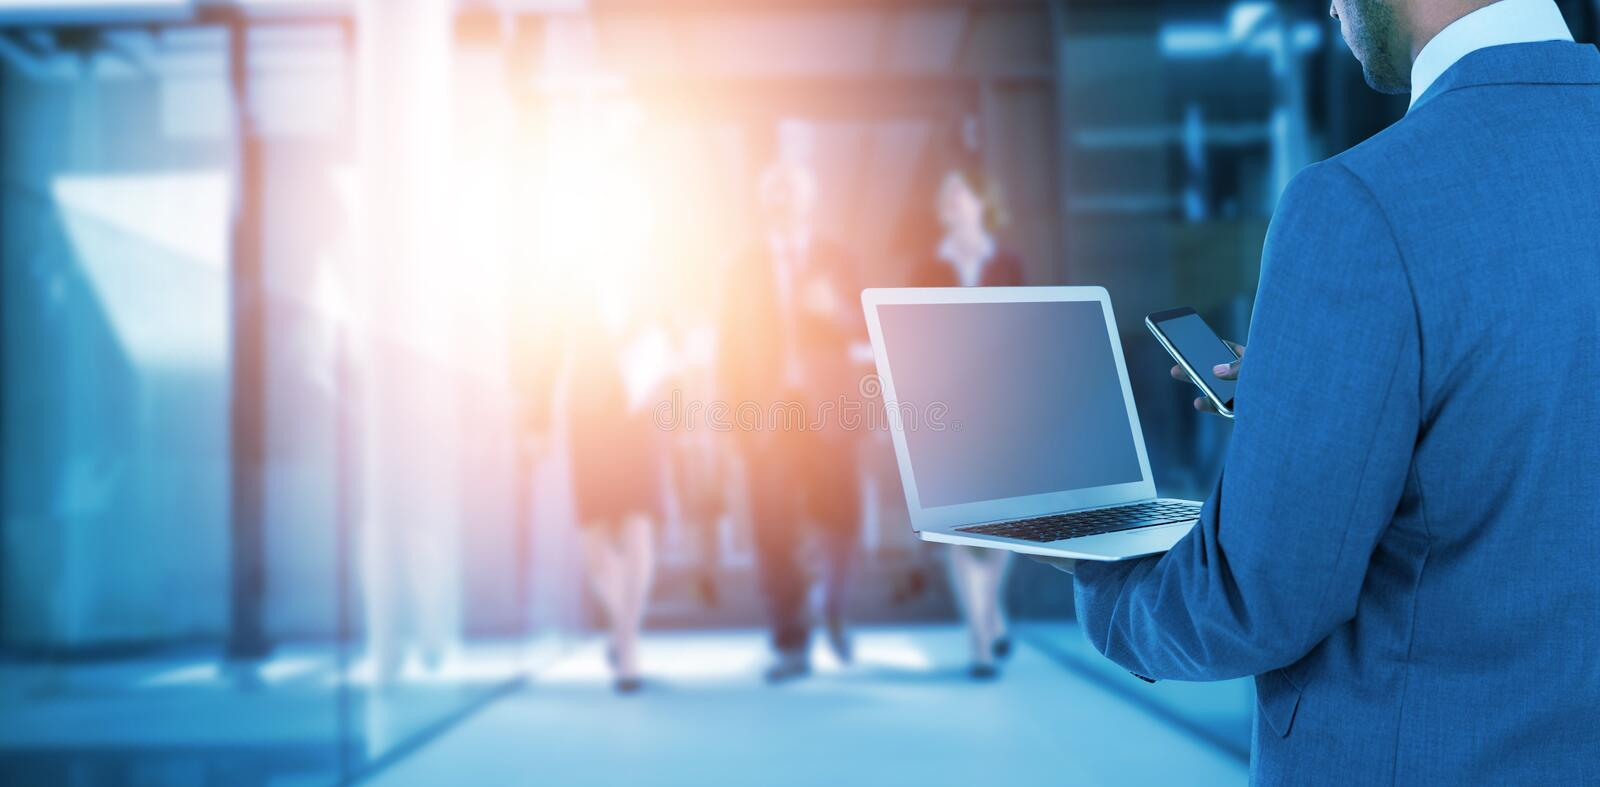 Composite image of rear view of businessman using laptop and mobile phone. Rear view of businessman using laptop and mobile phone against businesspeople walking royalty free stock photos